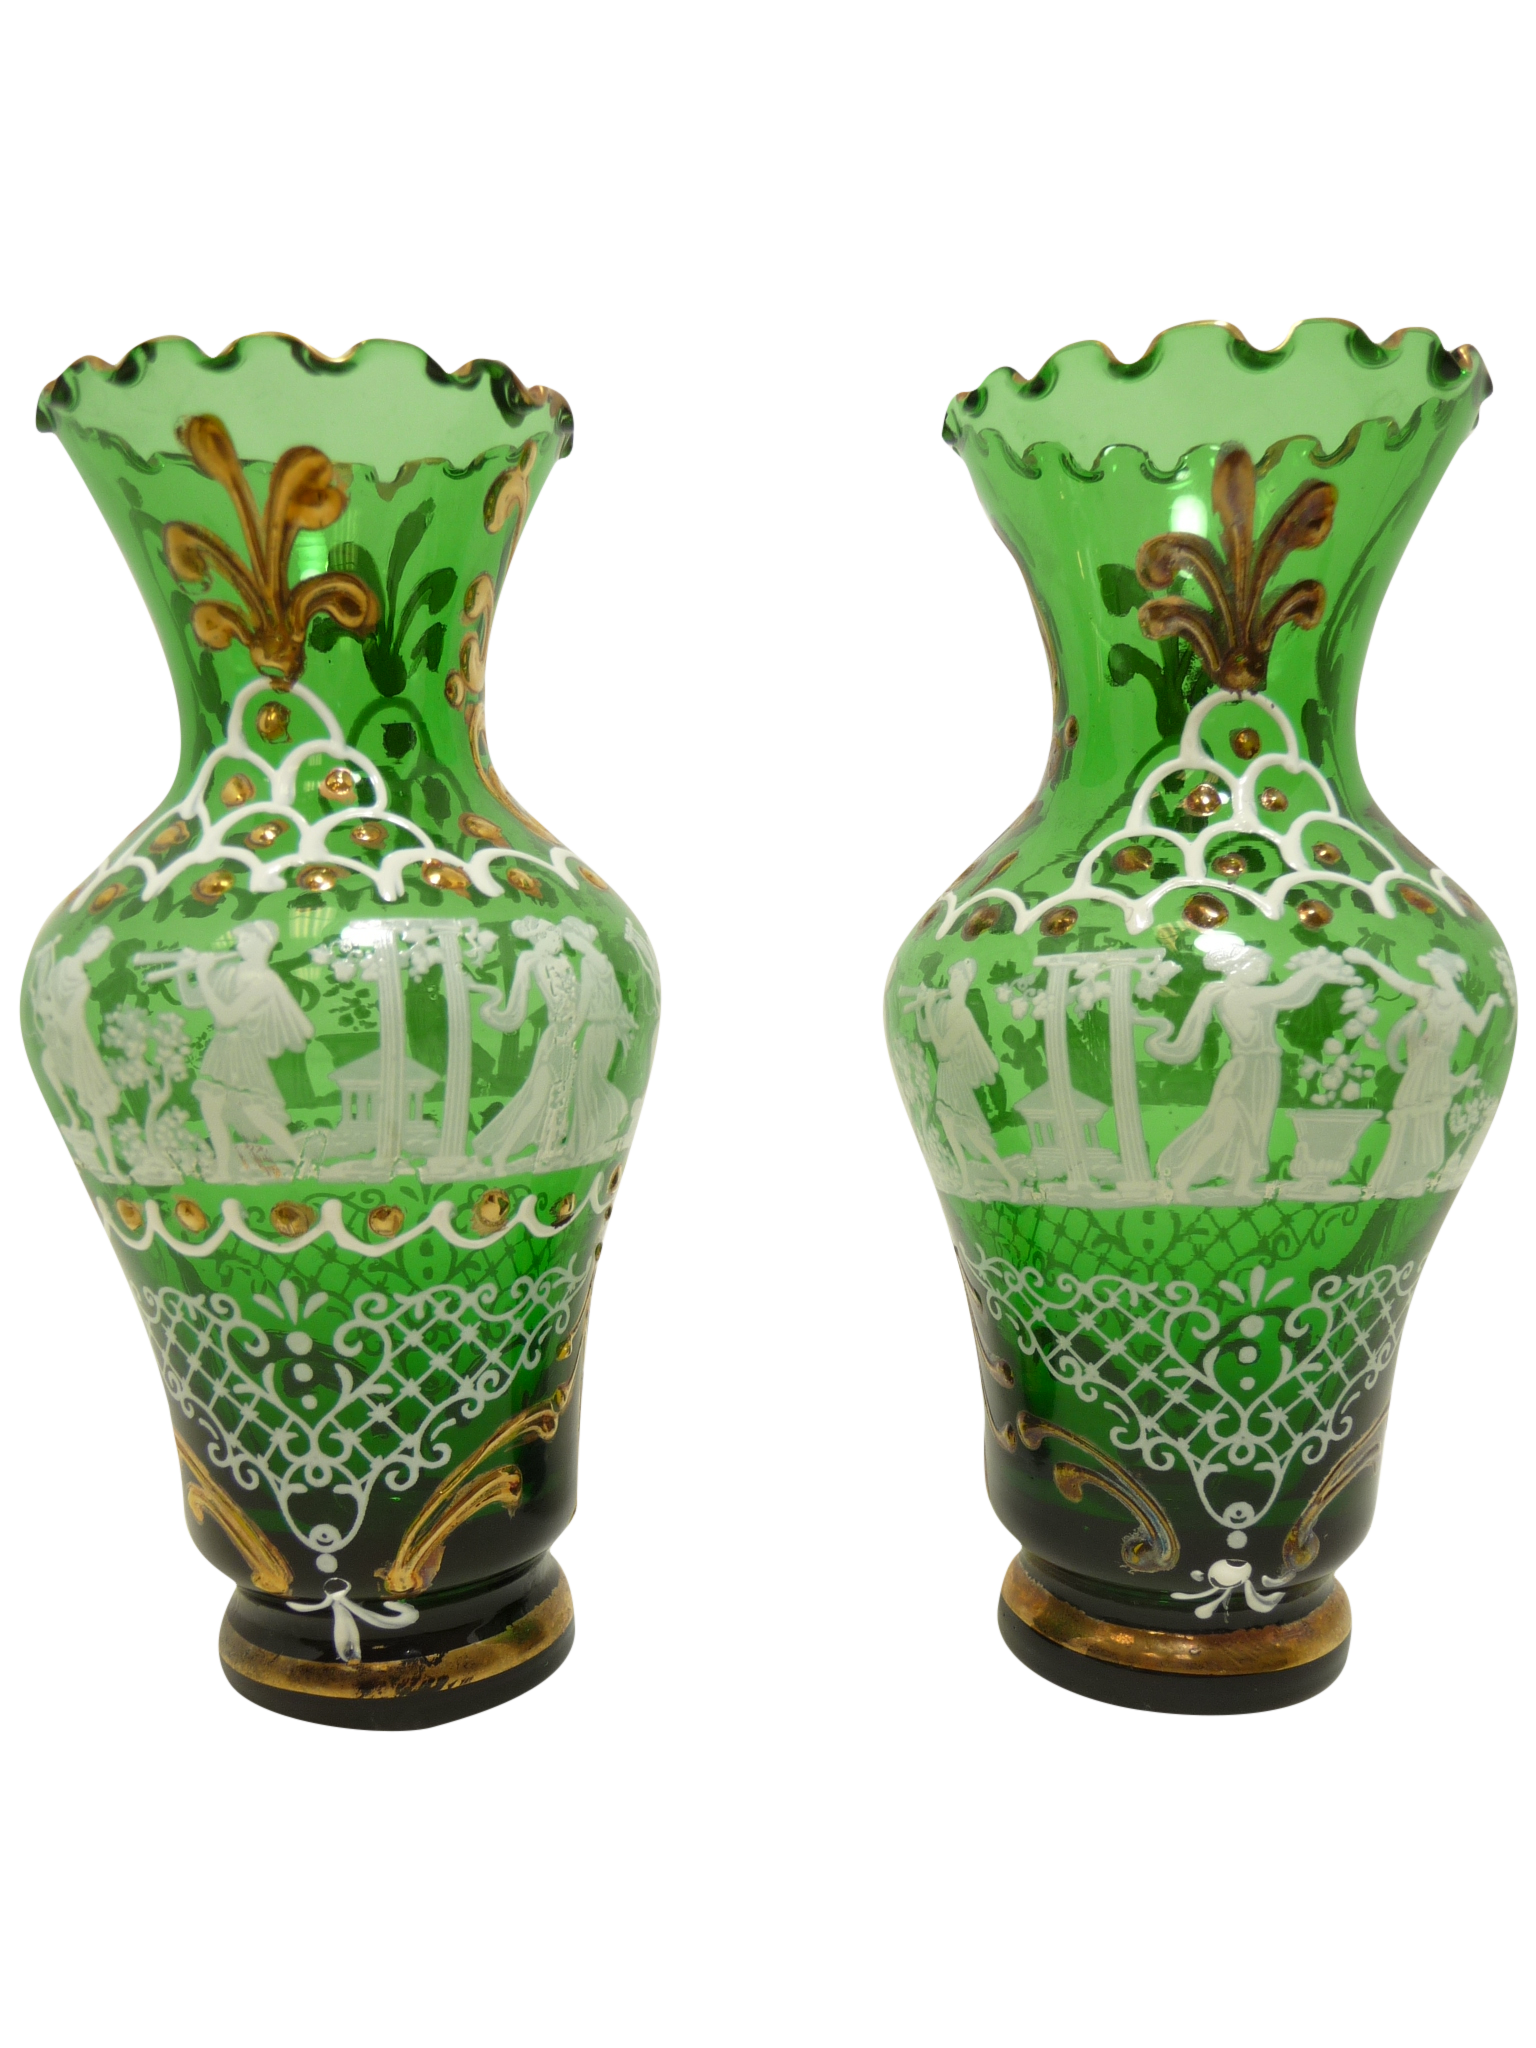 Emerald Art Glass vintage & used green vases | chairish